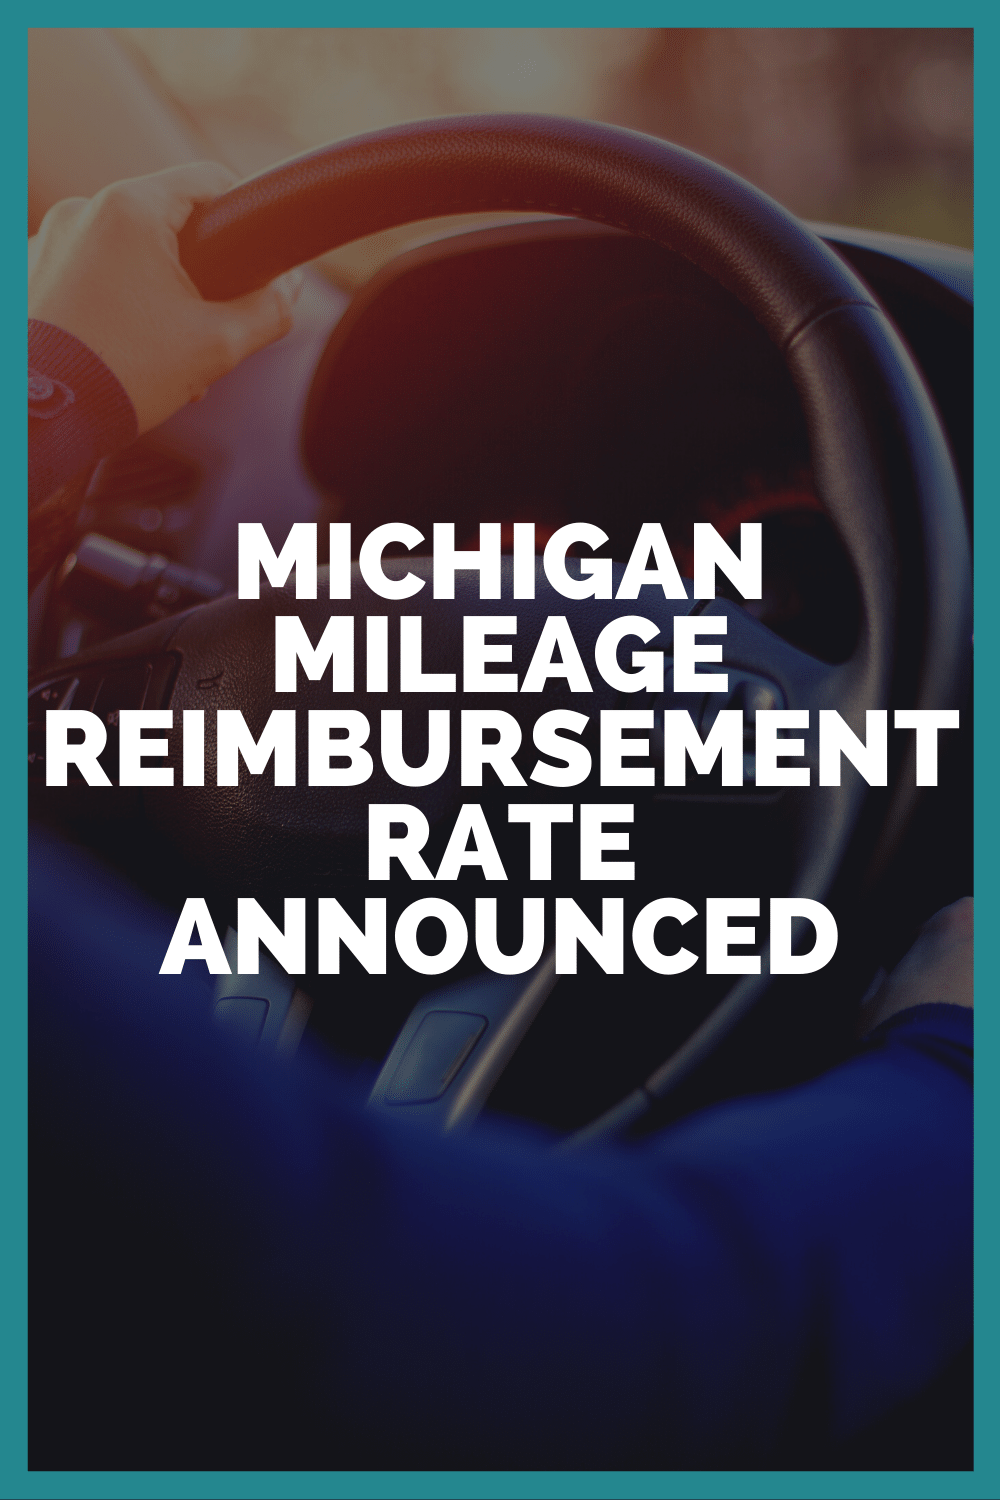 Michigan Mileage Reimbursement Rate 2021 Announced